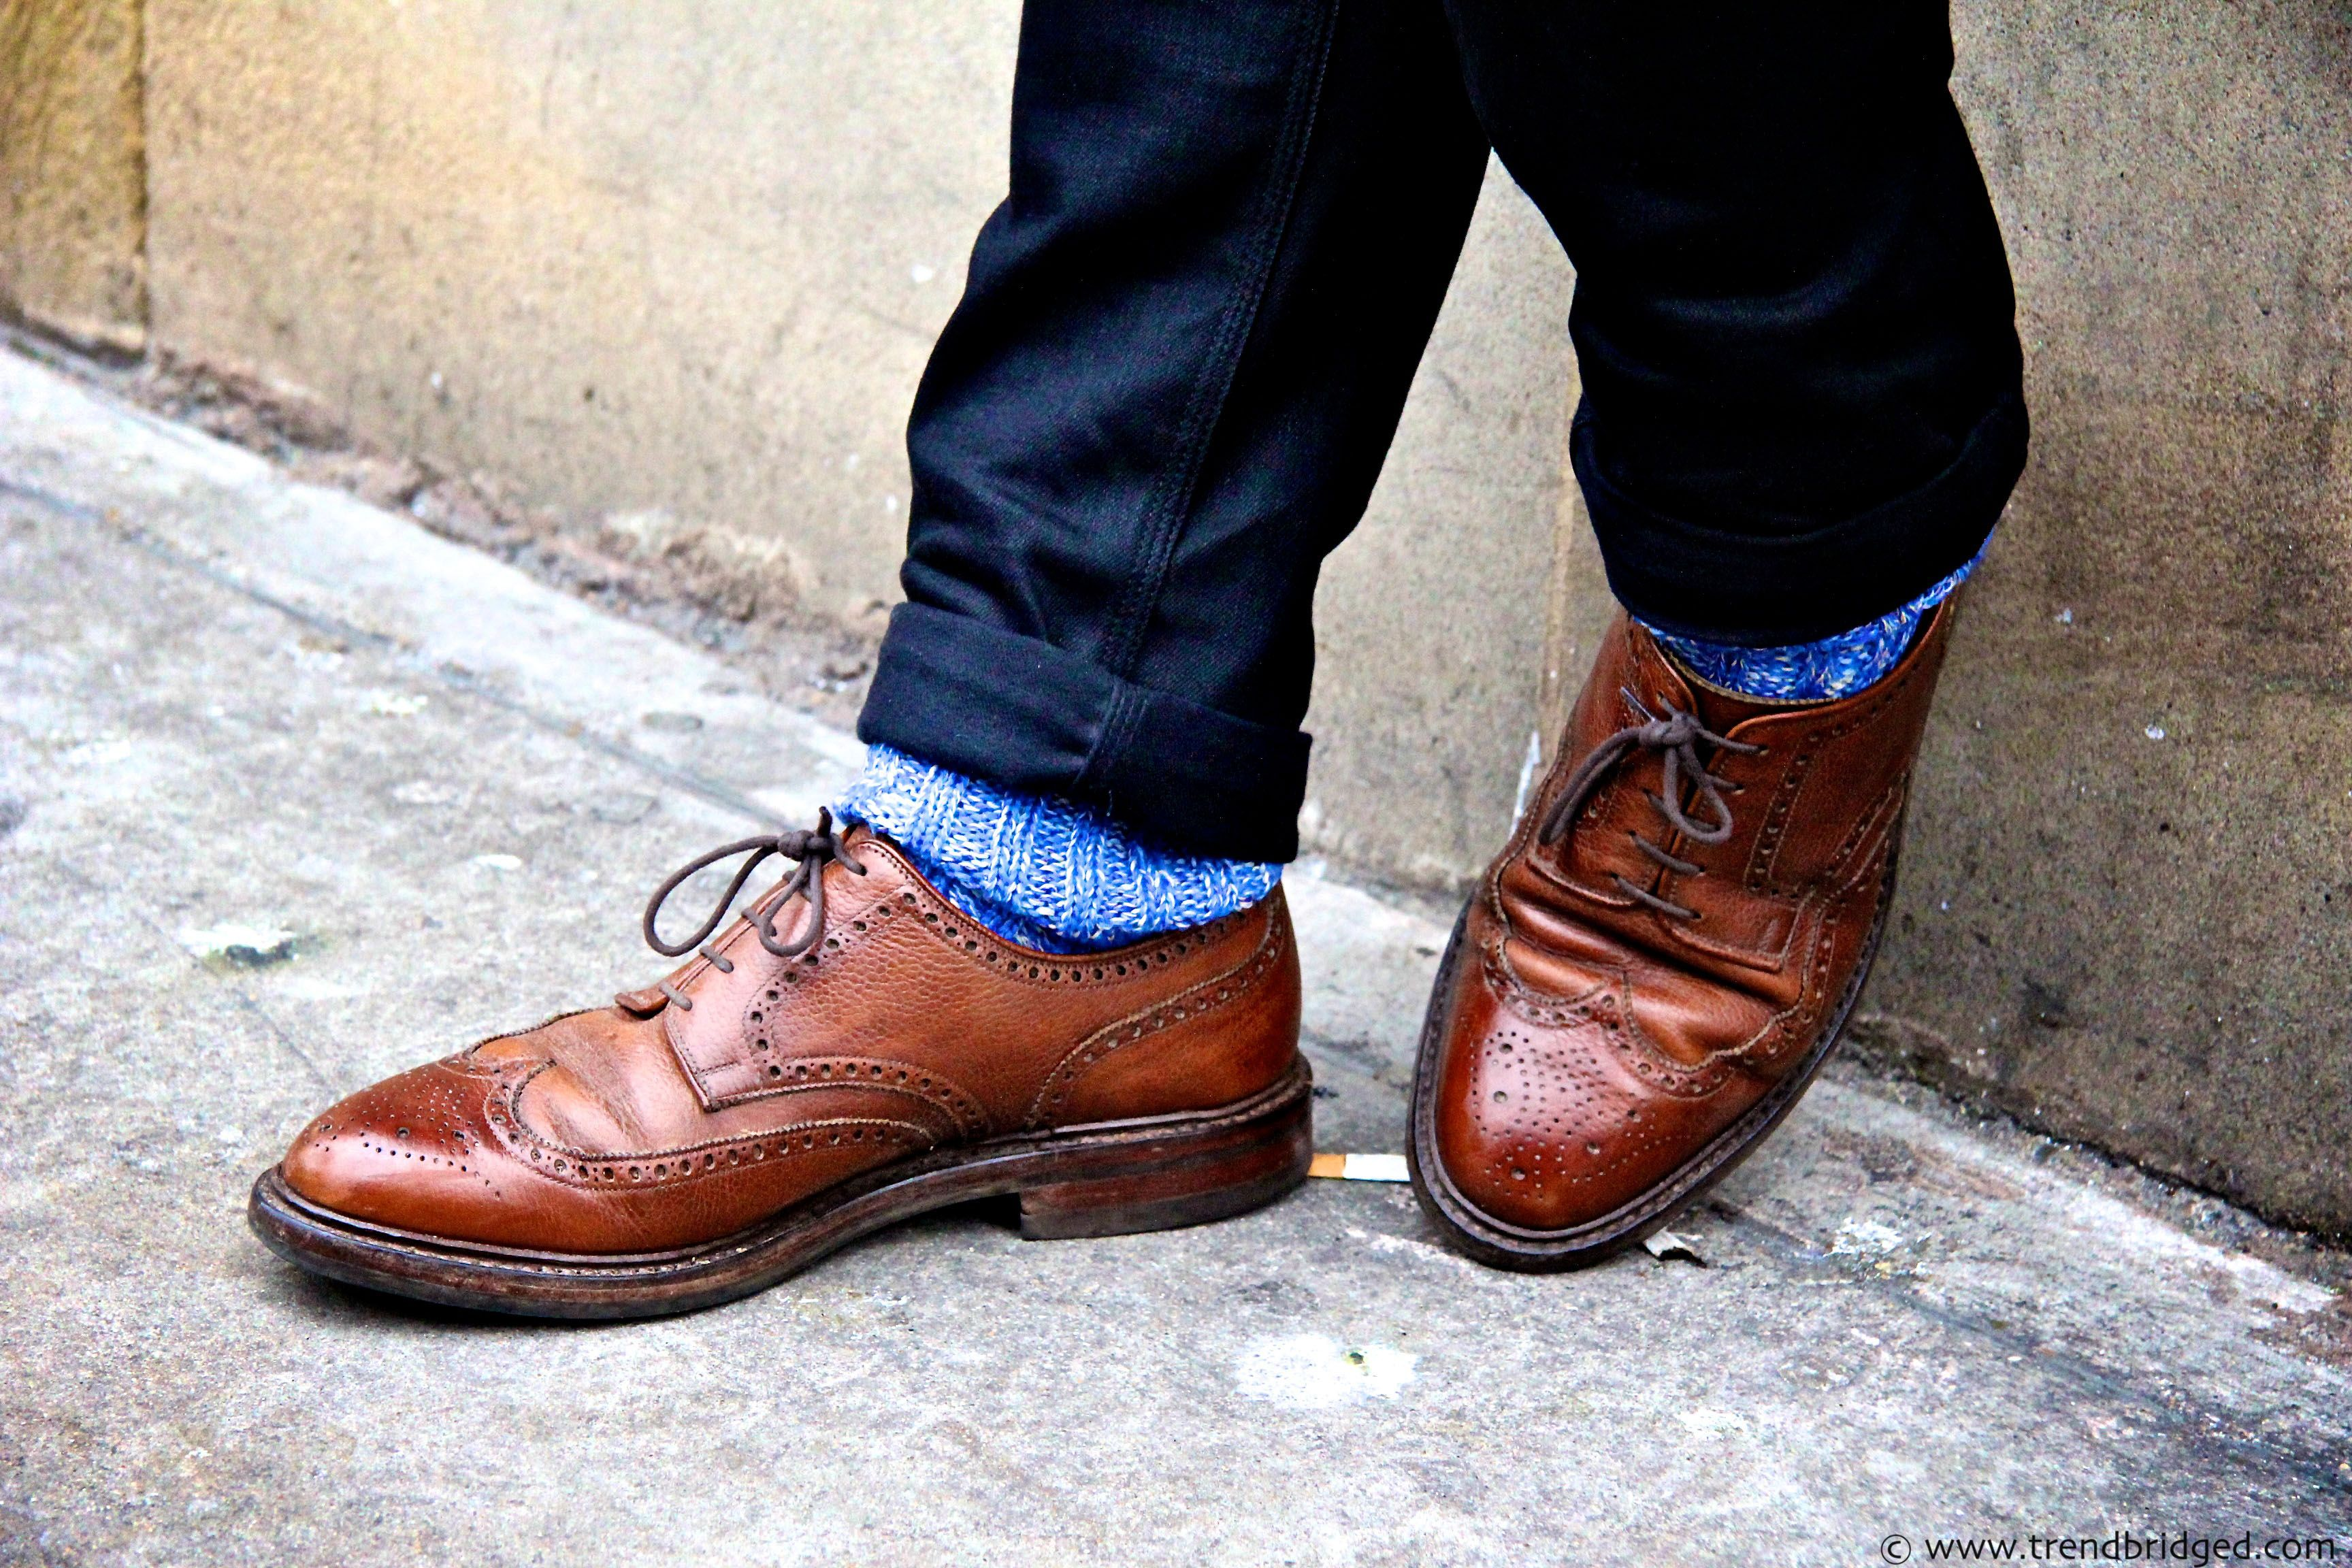 17 Best images about Shoes on Pinterest | Leather men, Boots and ...